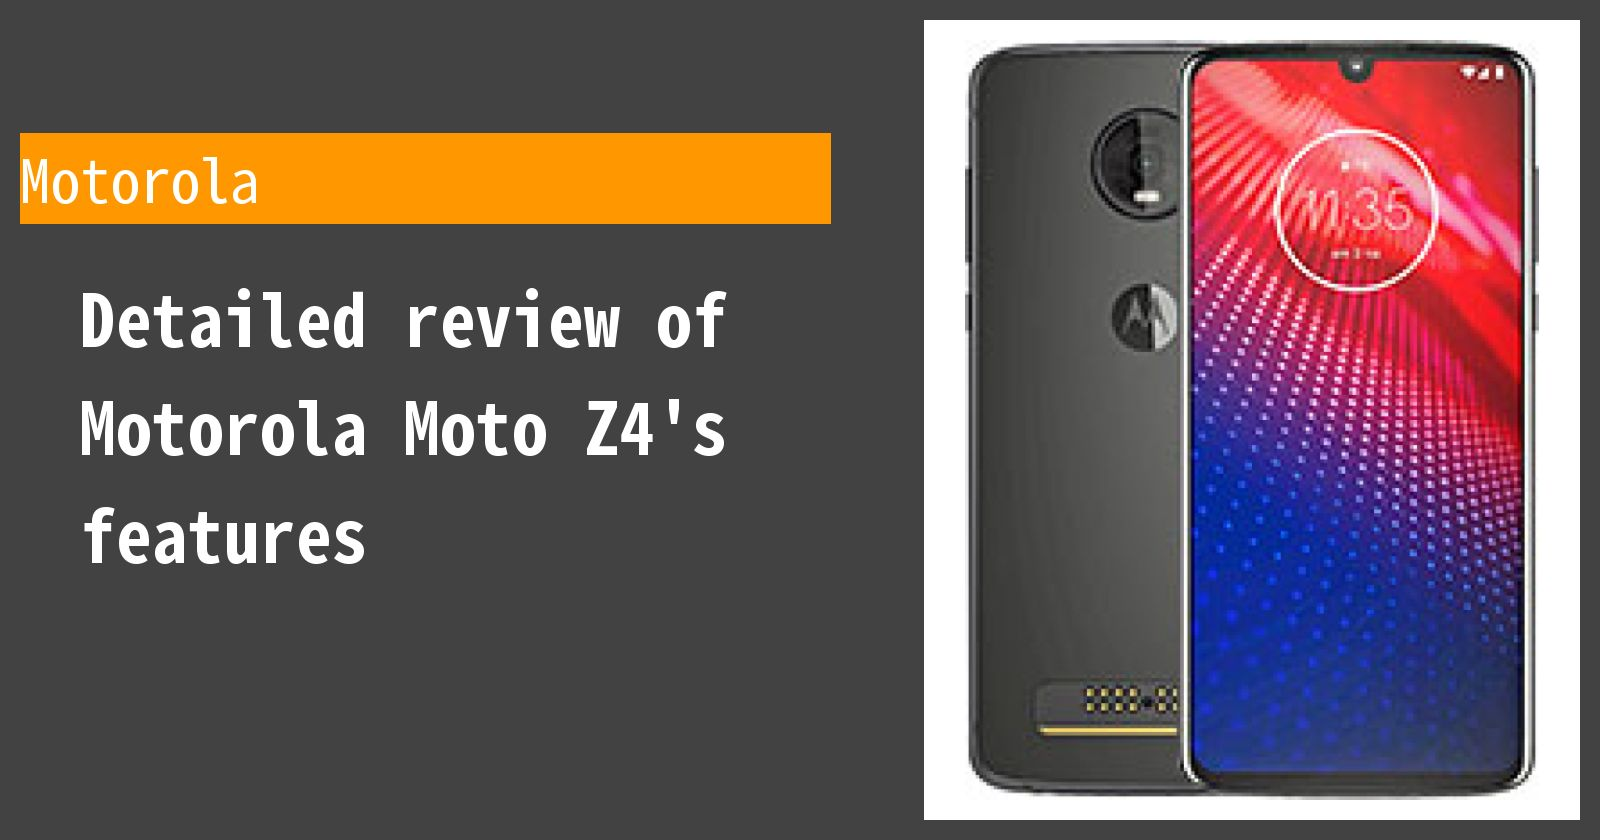 Detailed review of Motorola Moto Z4's features